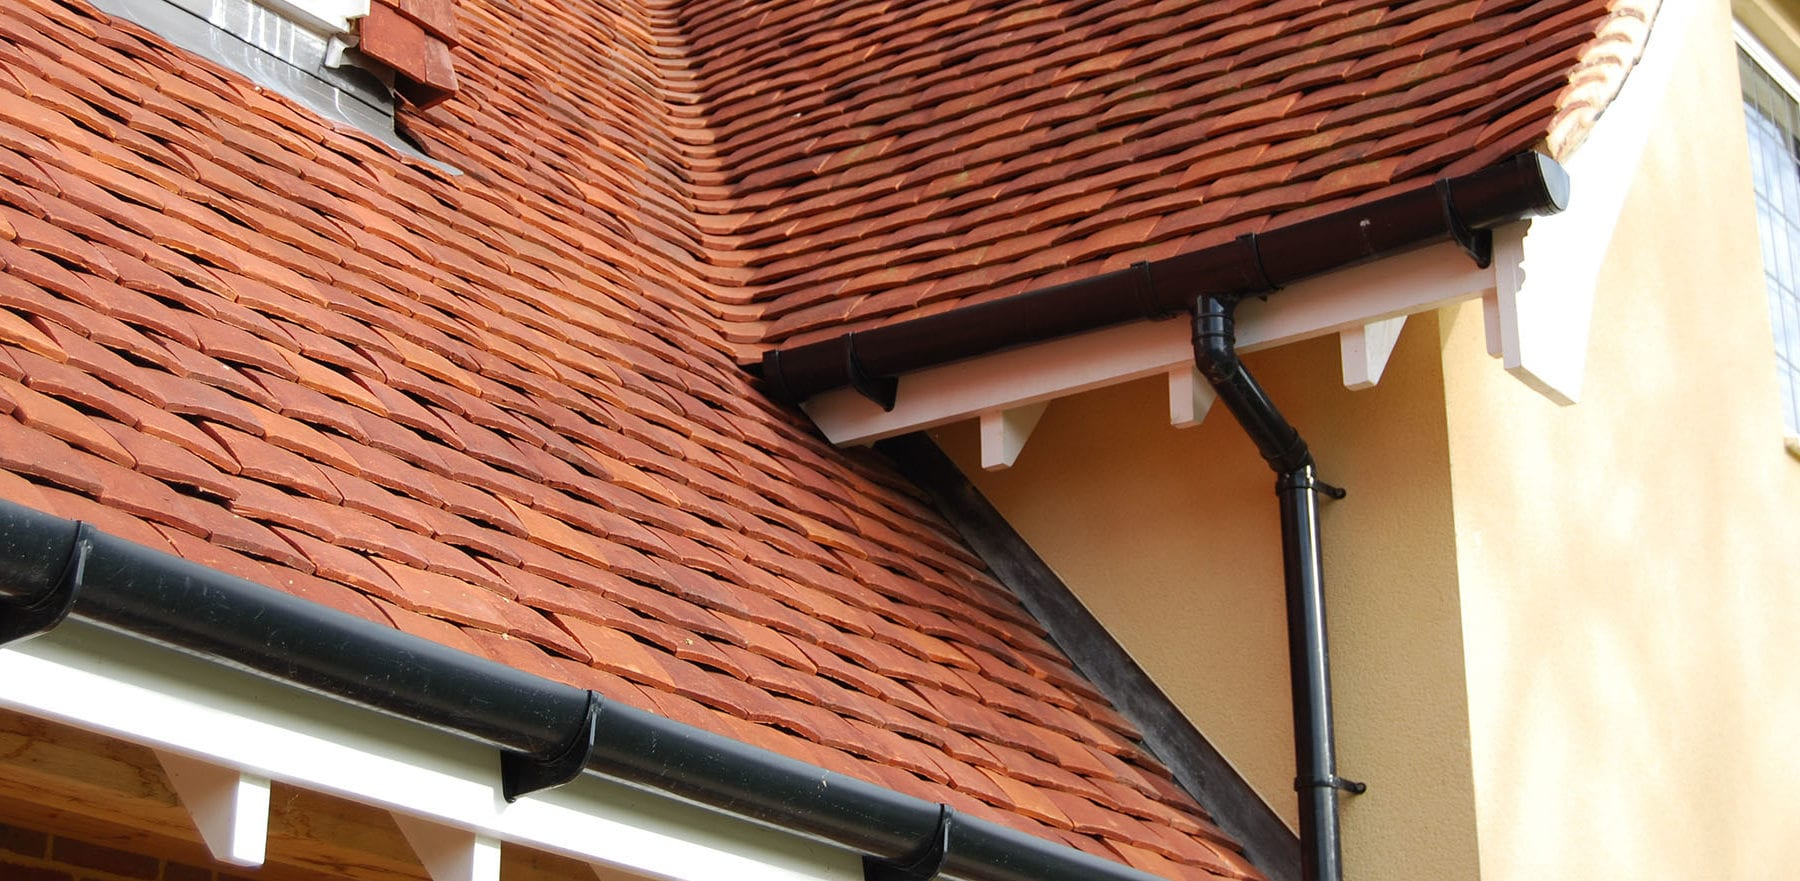 Lifestiles - Handmade Red Clay Roof Tiles - Rudley, England 4